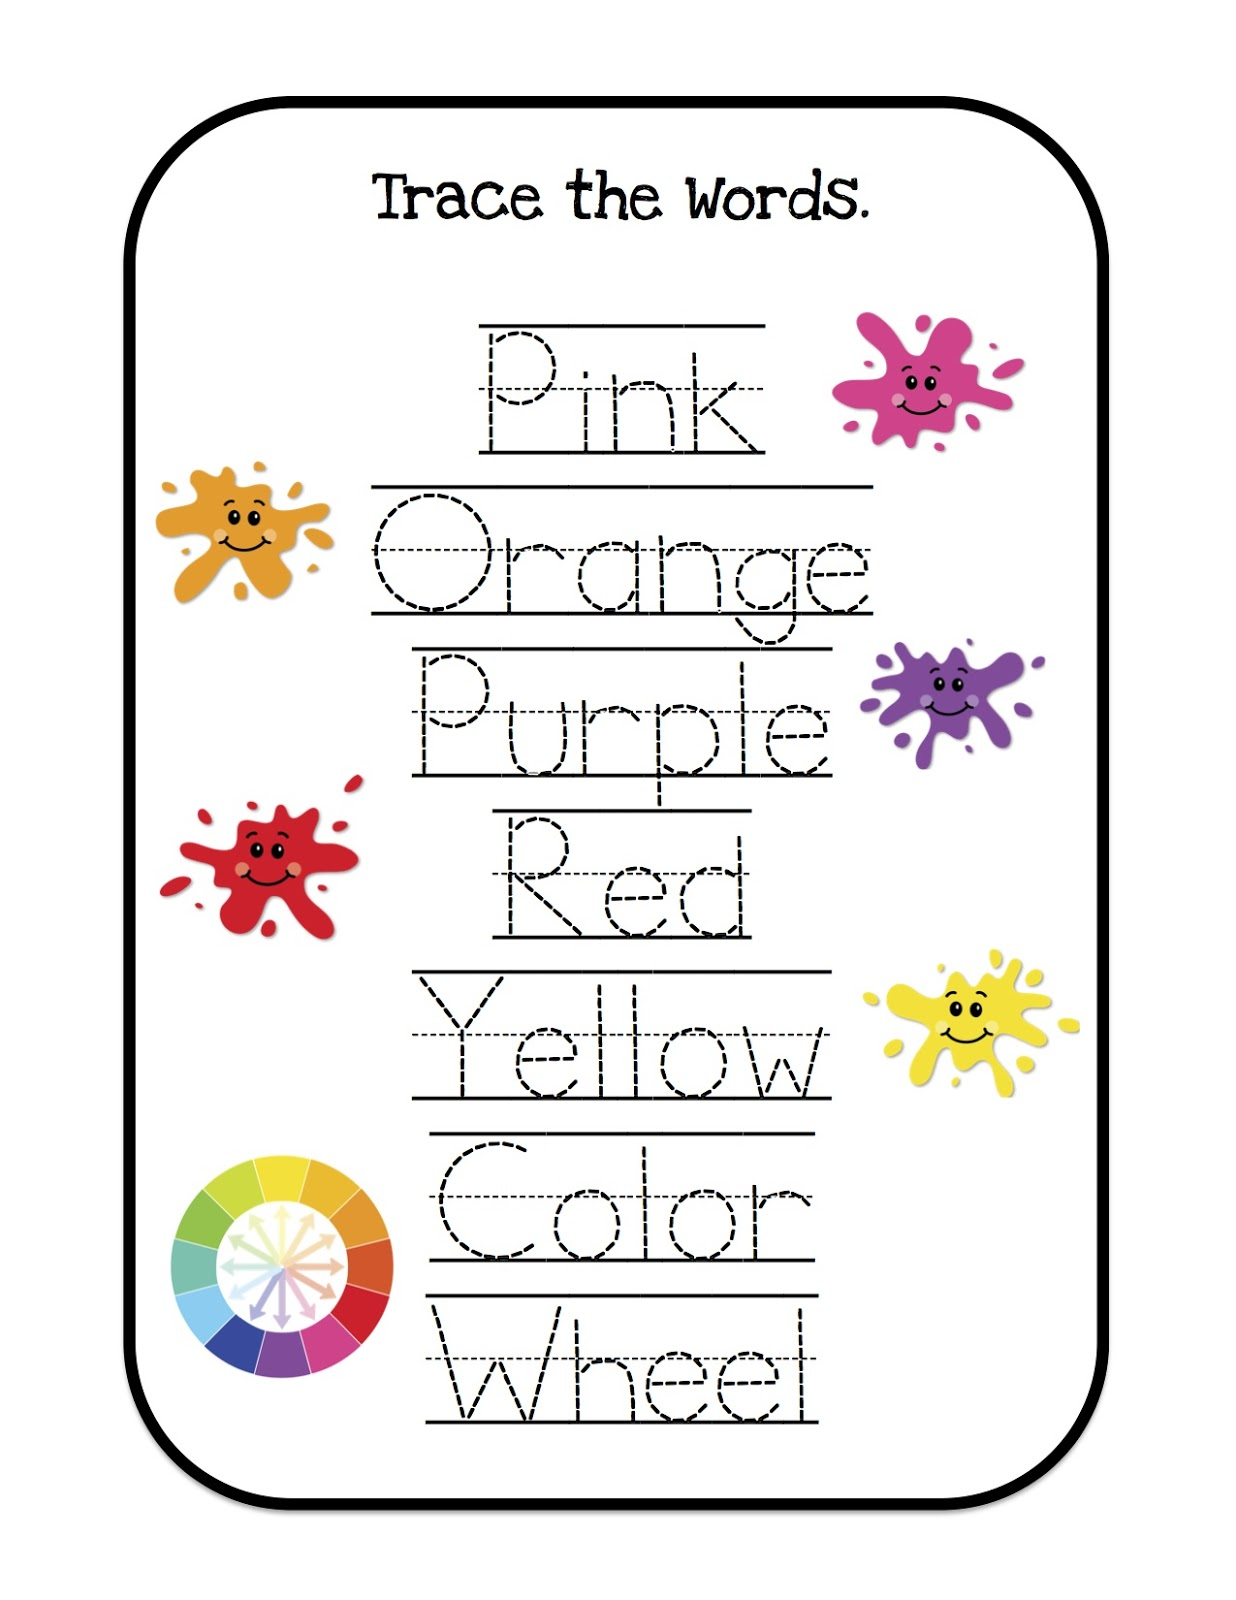 Colors for learning free printable learning colors coloring pages are - Filename Trace The Words 2 Jpg View Image Found On 2013 03 Learning Colors Printable Html